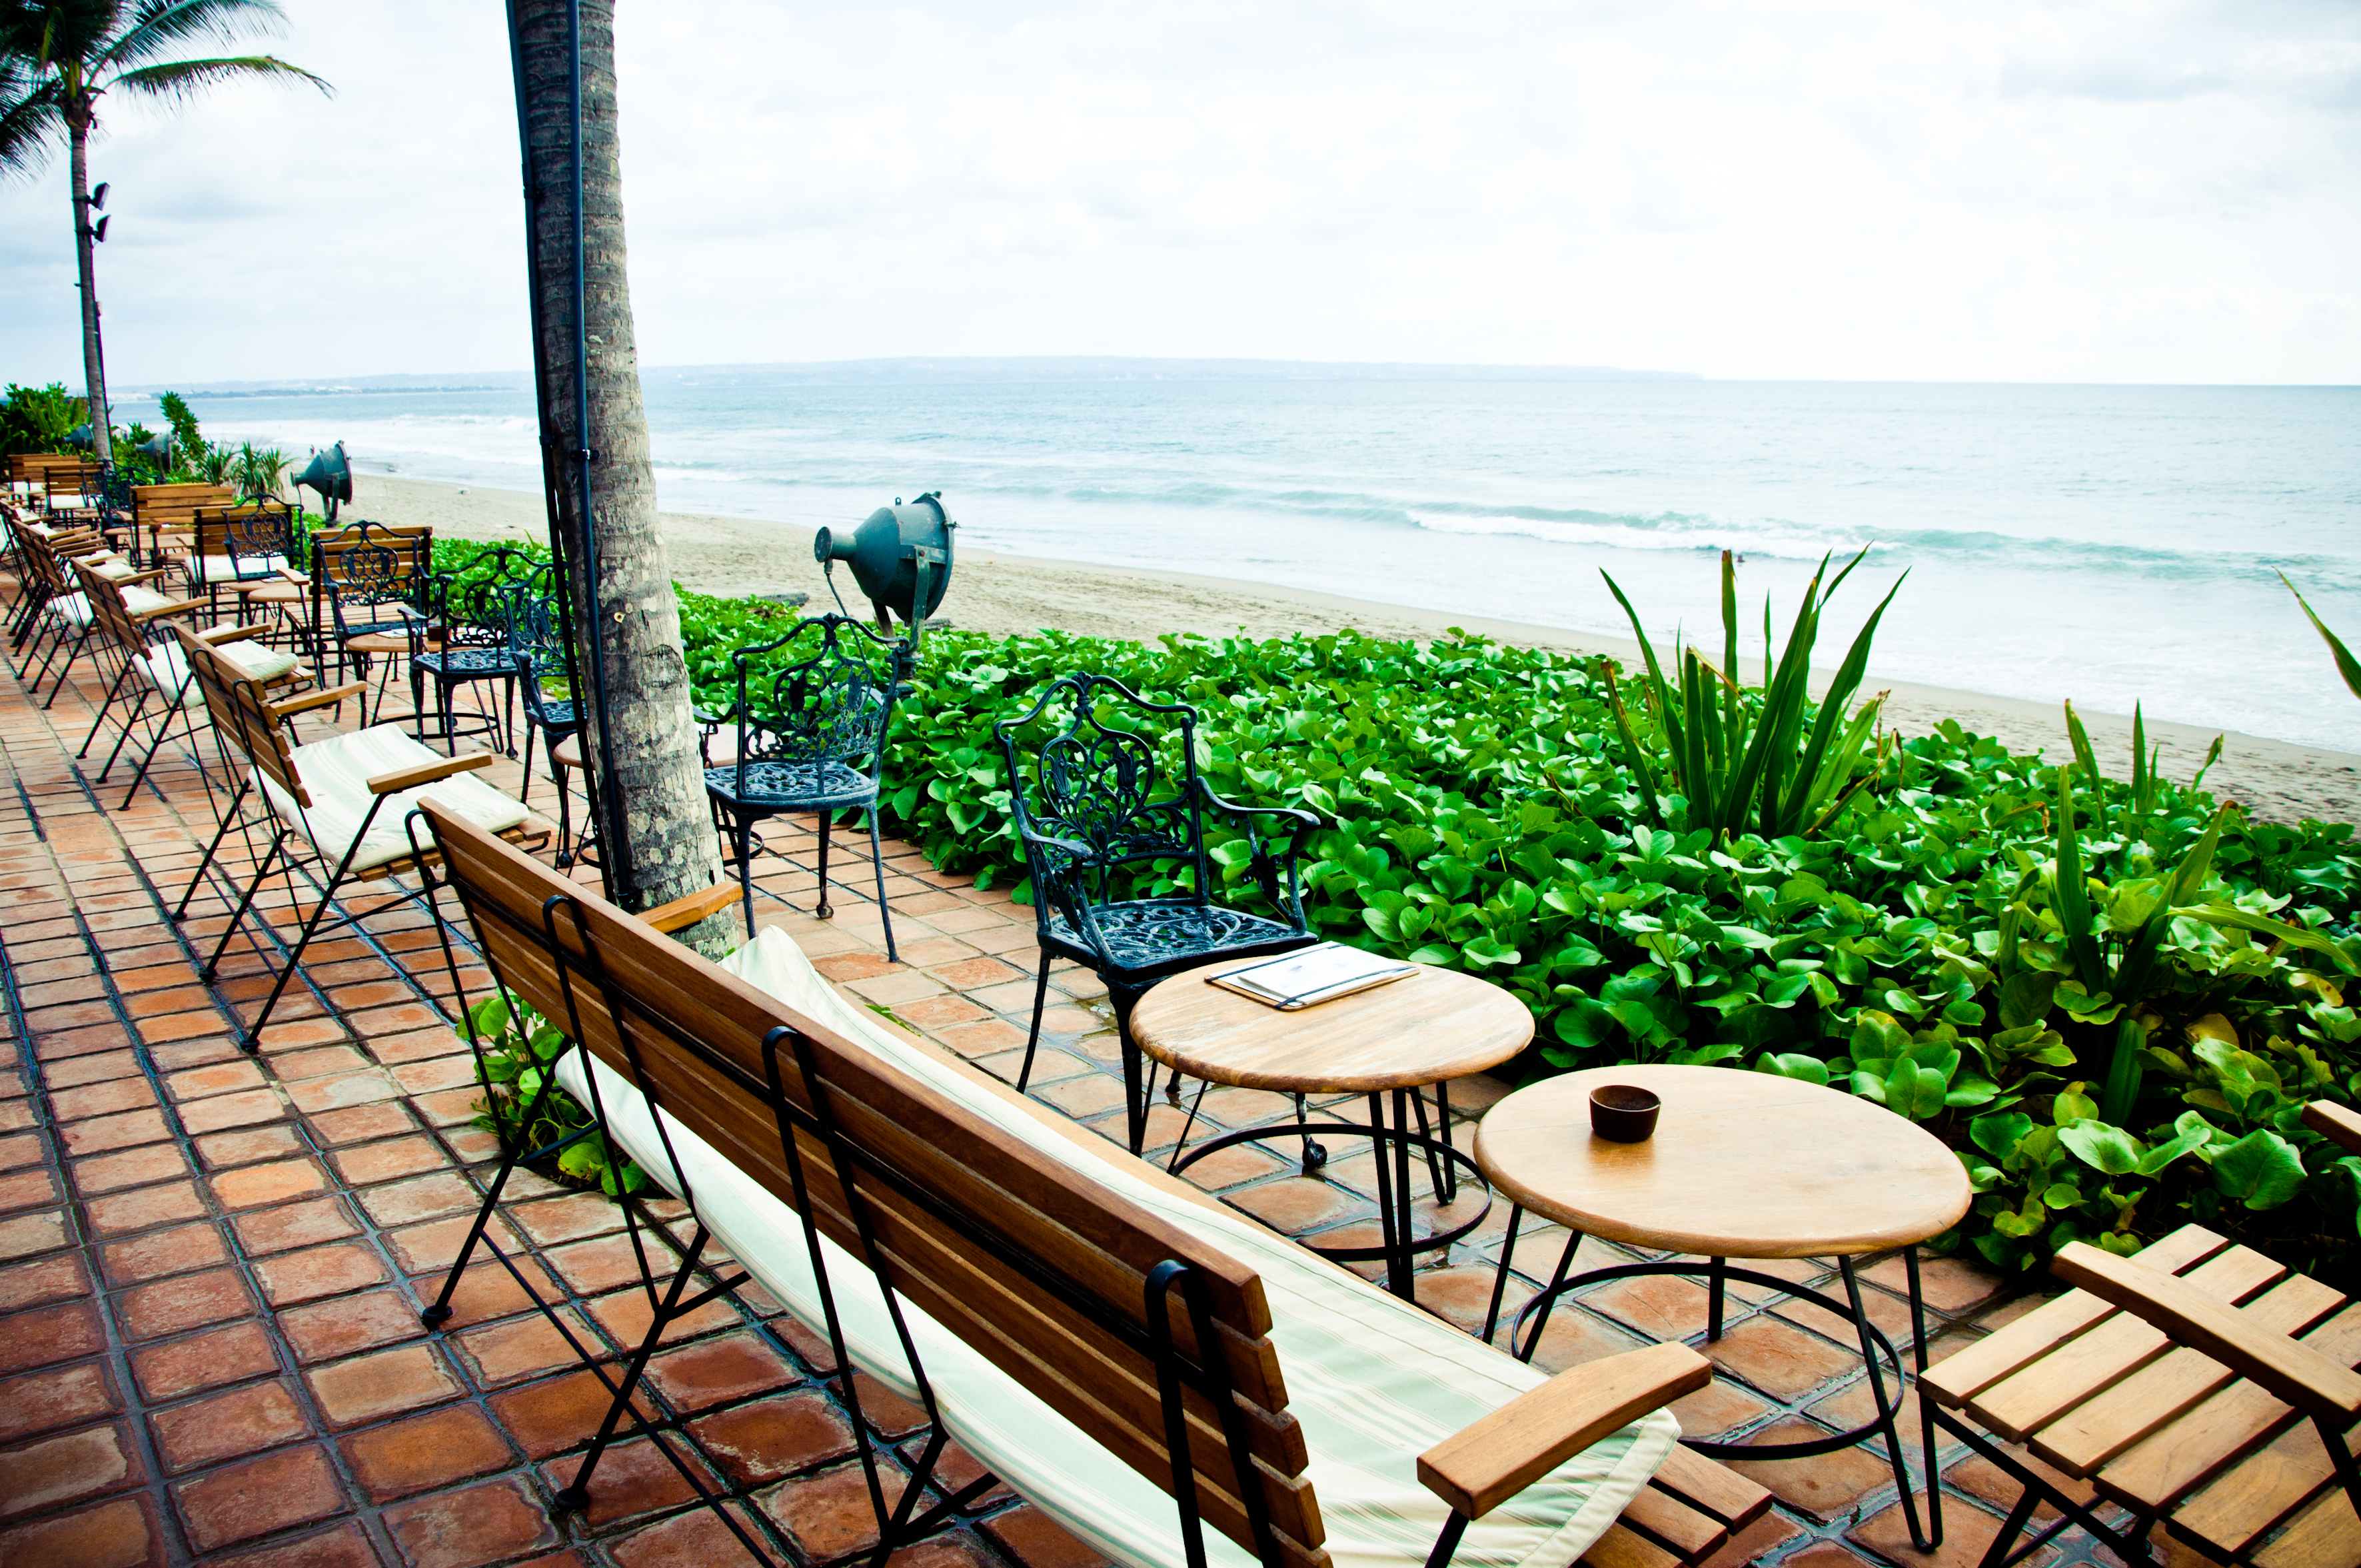 Cafe by the beach, Architecture, Sky, Palm, Paradise, HQ Photo